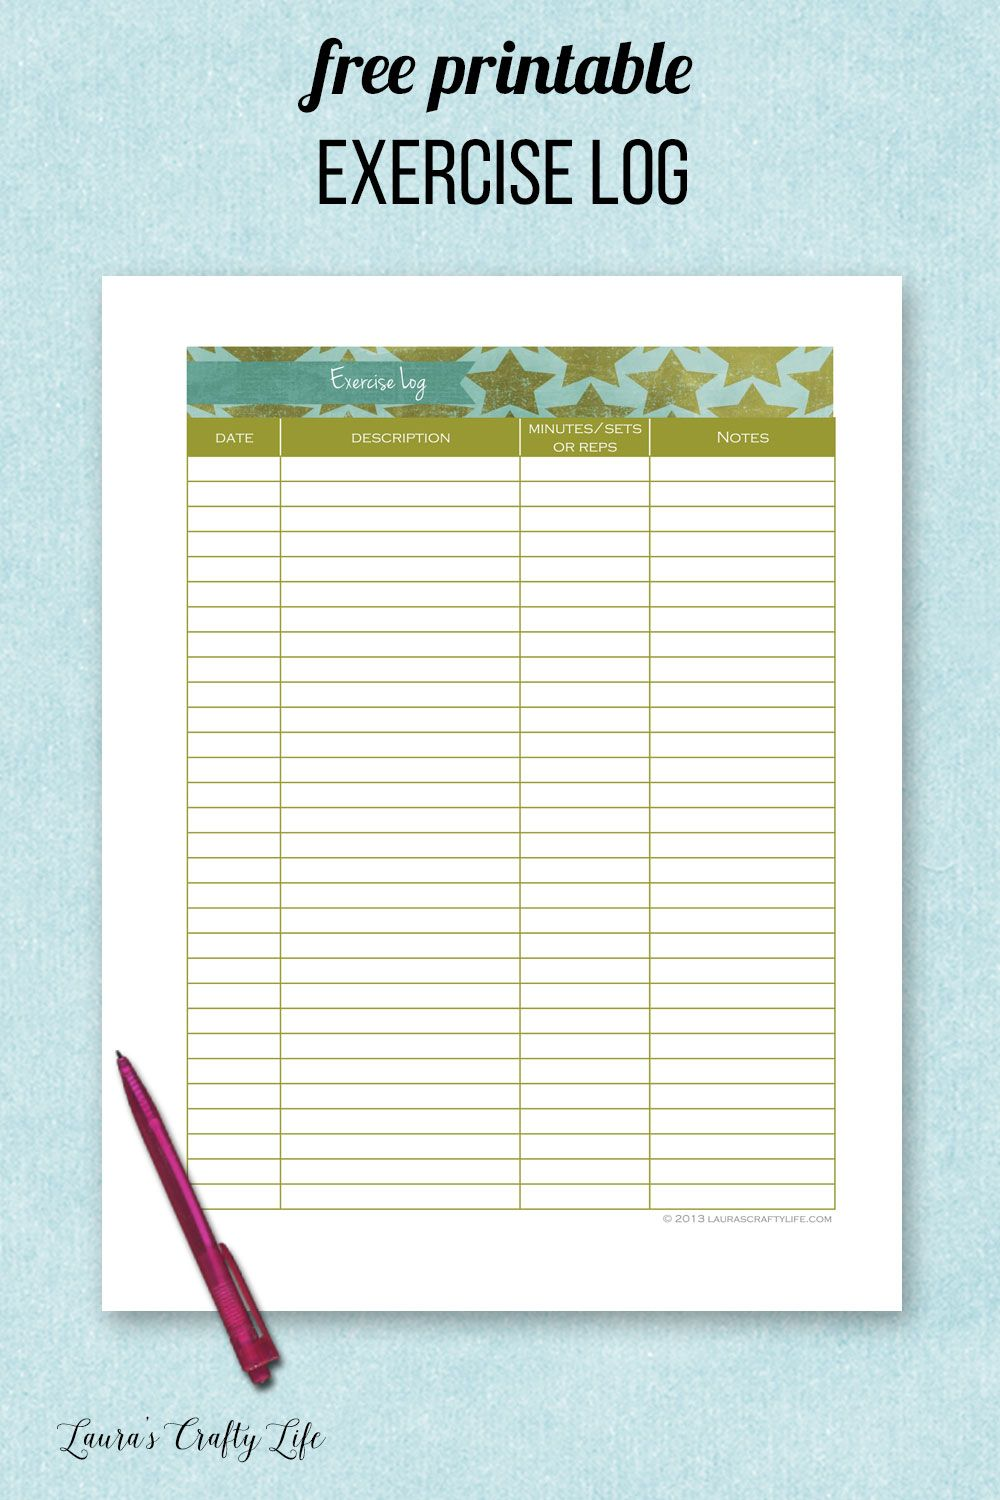 Free printable exercise log. Track the date, exercise